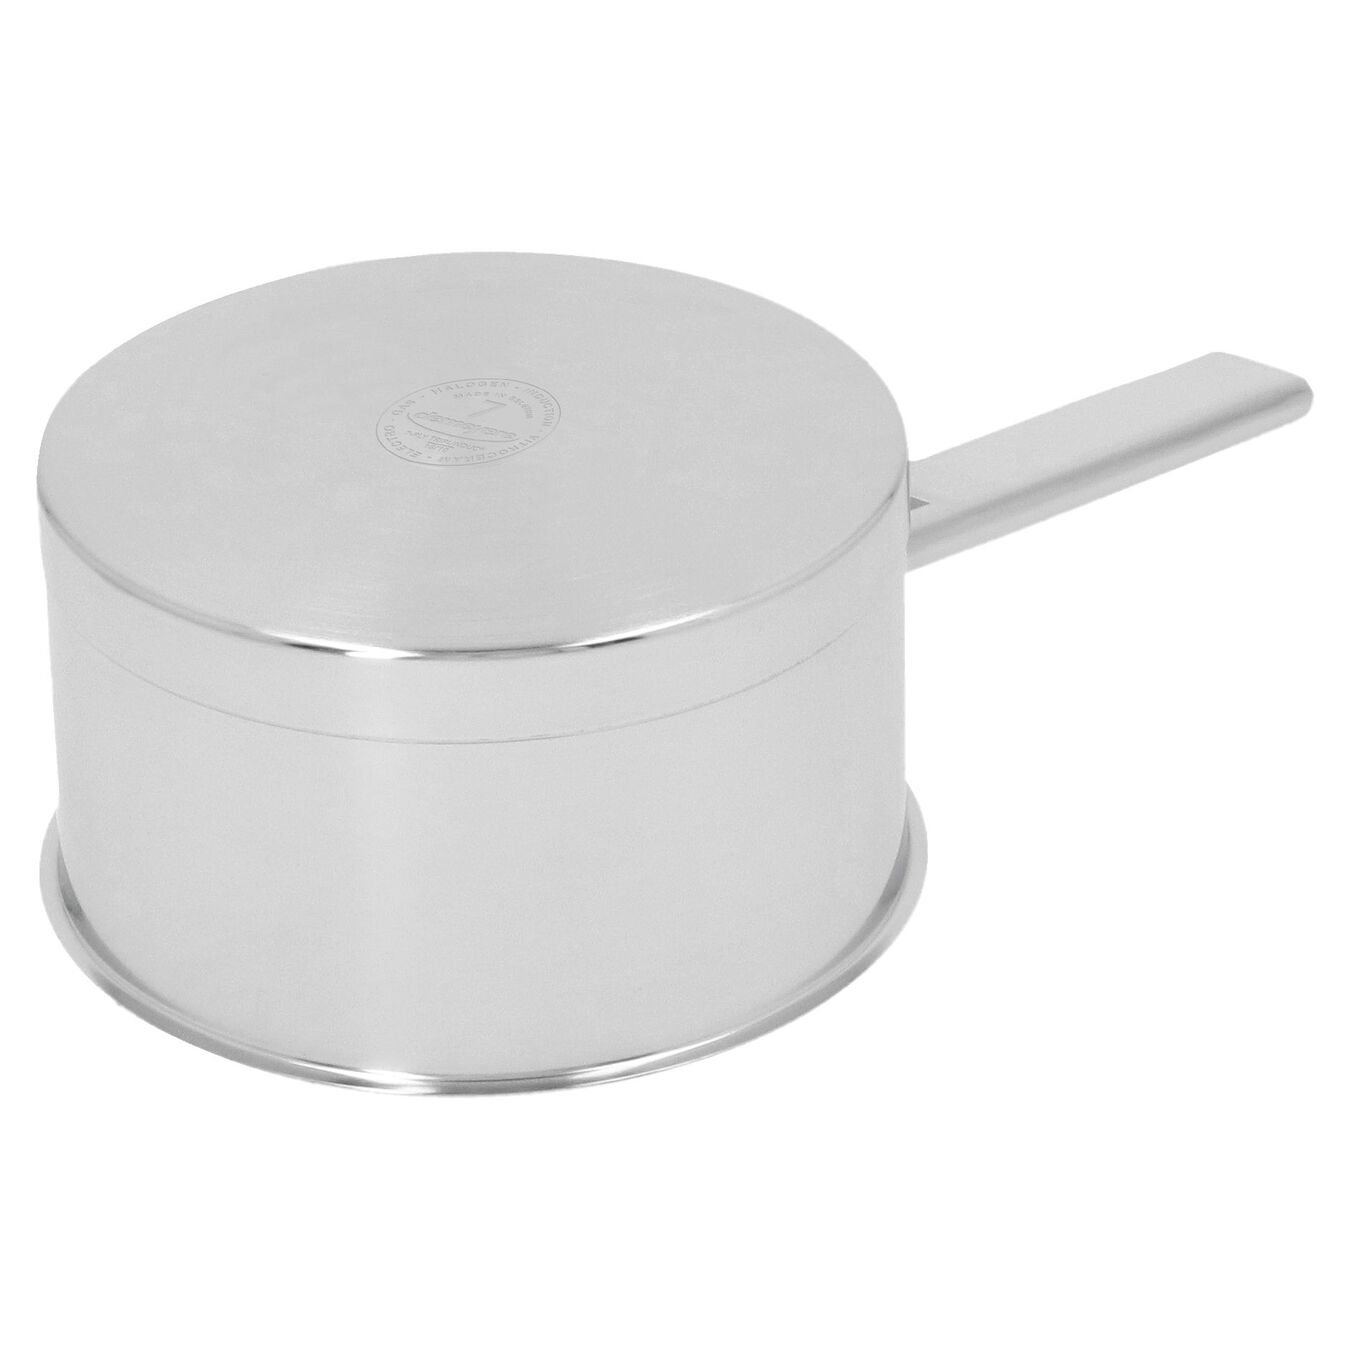 1.1 qt Sauce pan with double walled lid, 18/10 Stainless Steel ,,large 3